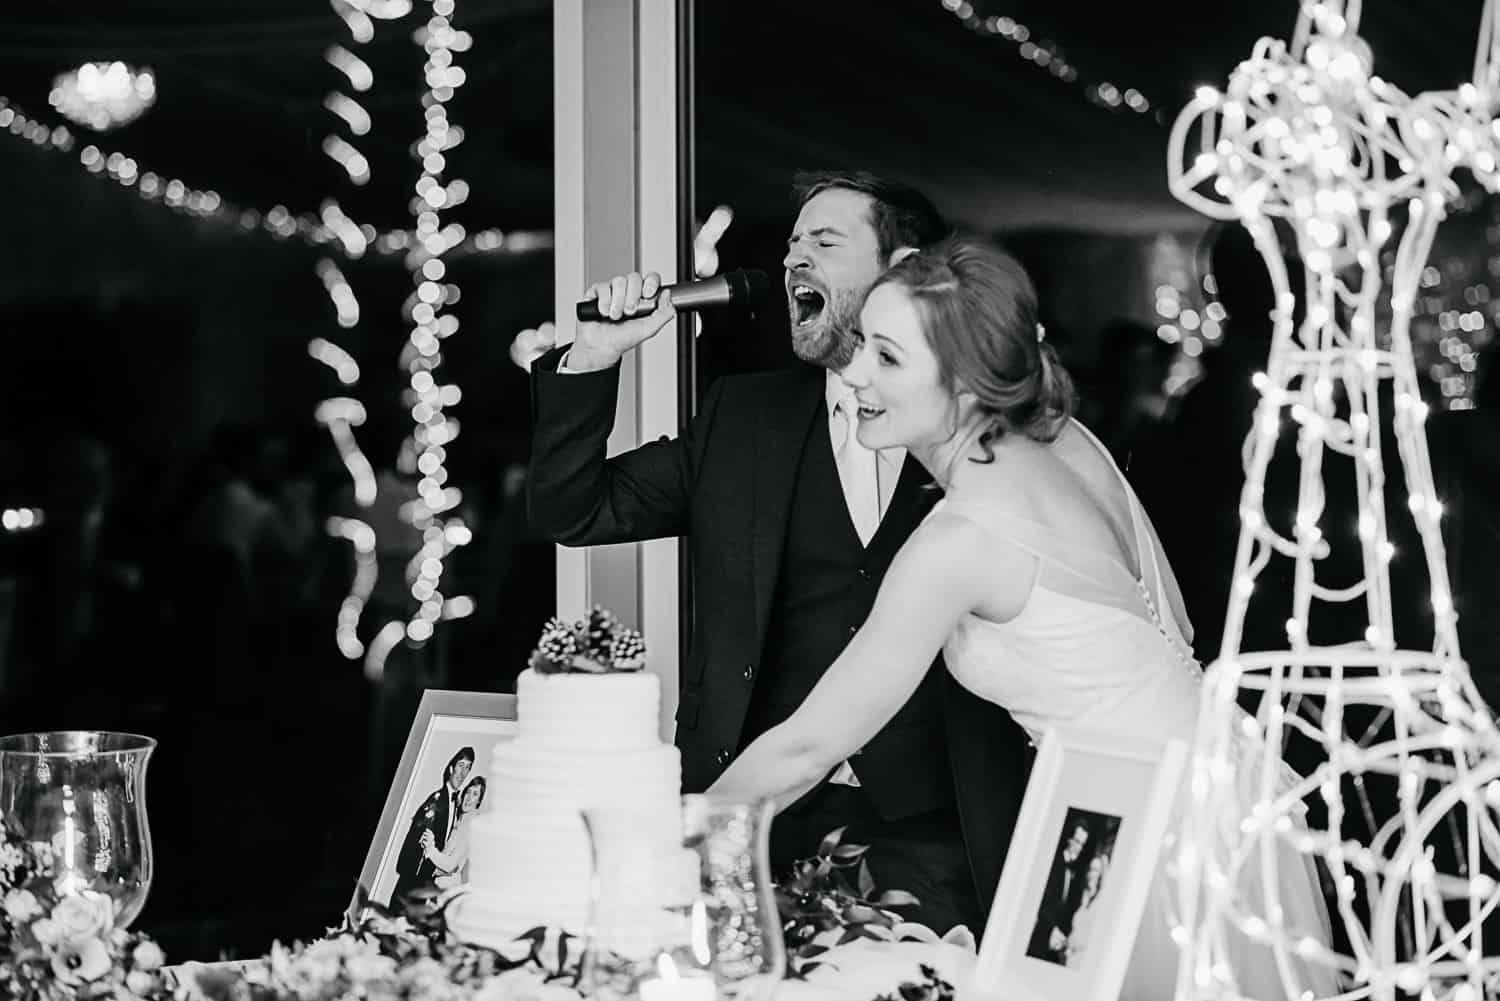 funny photo of weddubg couple cutting the cake